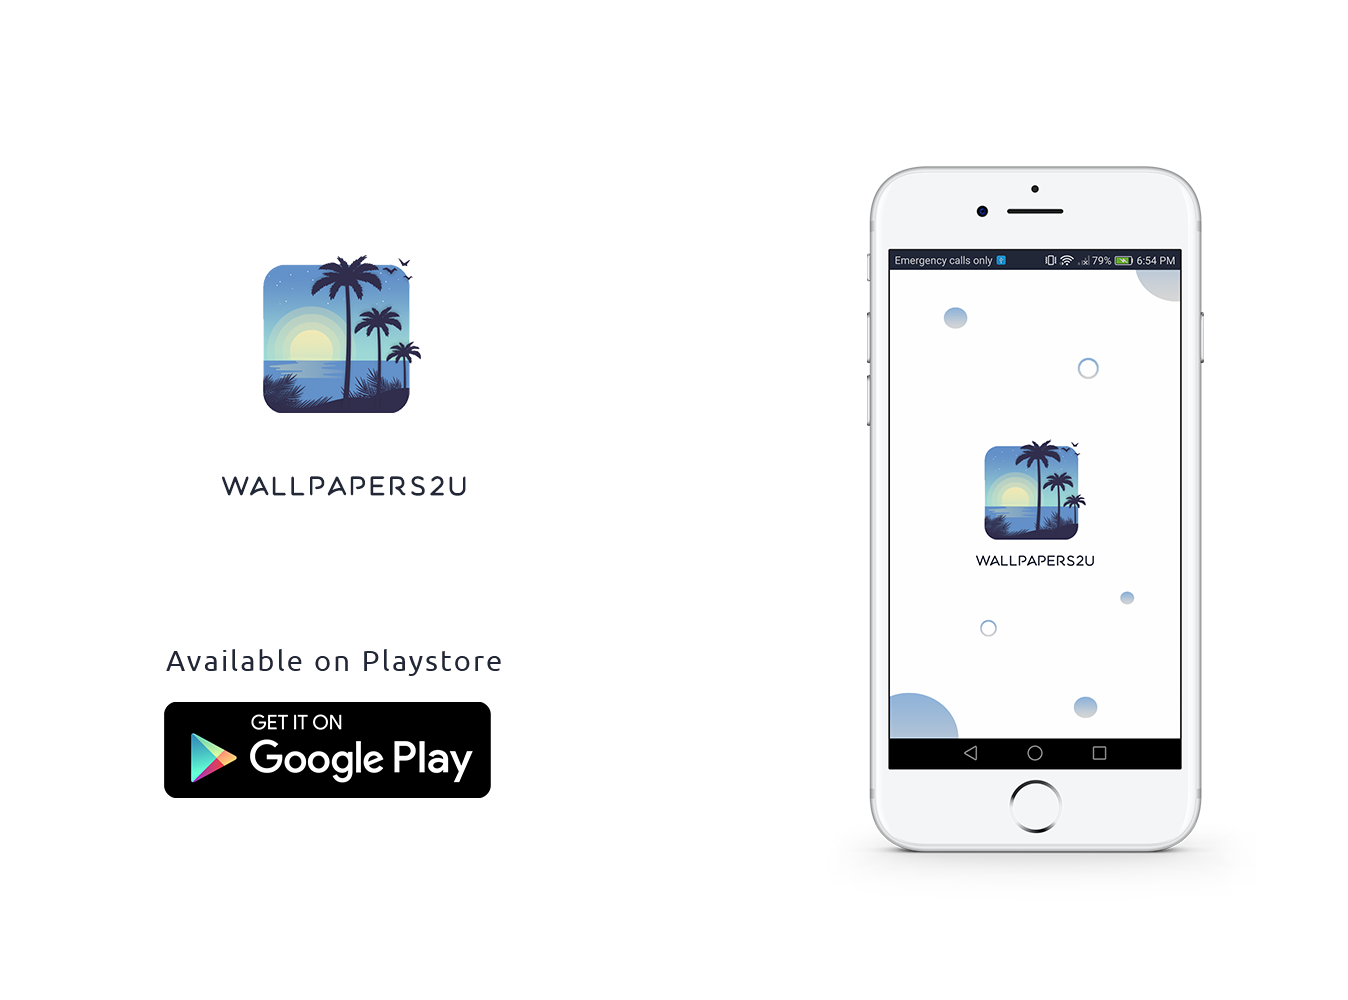 Wallpapers2u - Complete Wallpaper app with Admin Panel Download